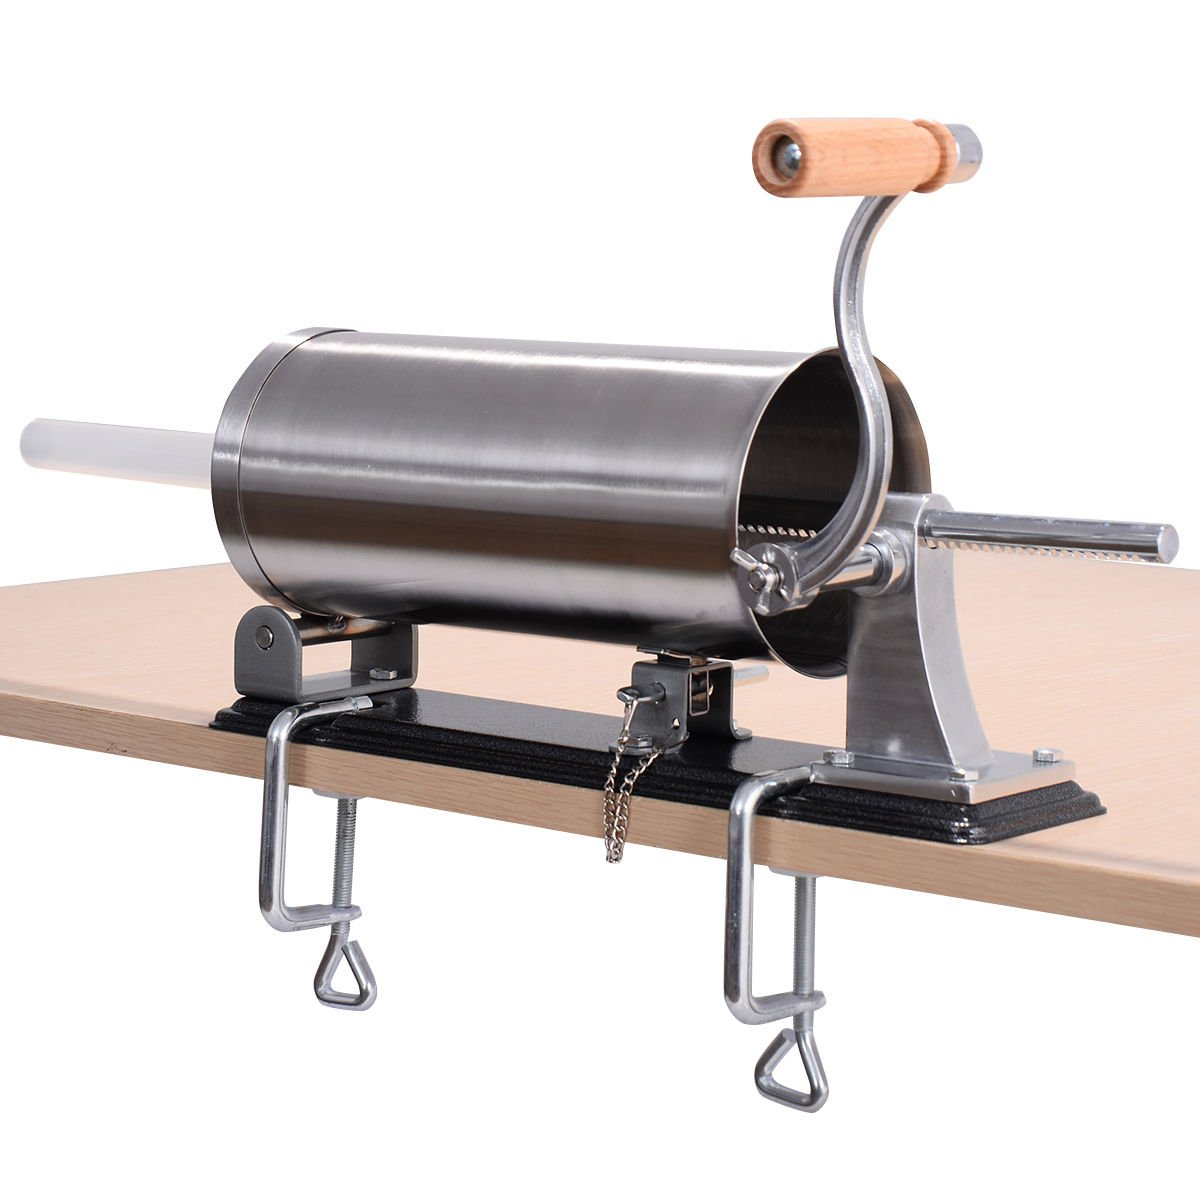 New 3.6L Sausage Stuffer Maker Meat Filler Machine Stainless Steel Commercial